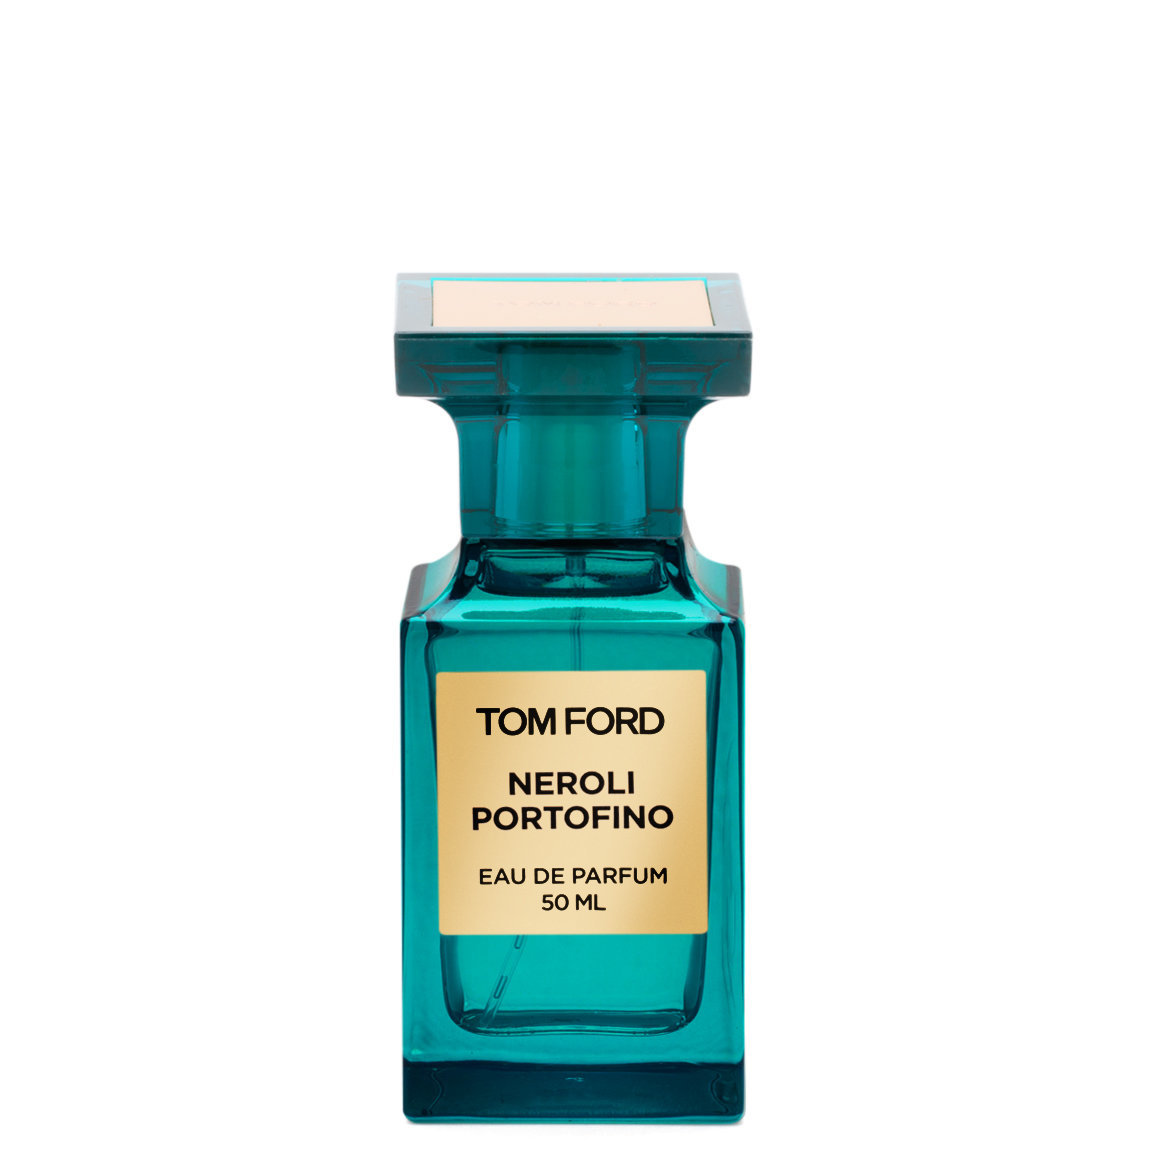 TOM FORD Neroli Portofino 50 ml product smear.